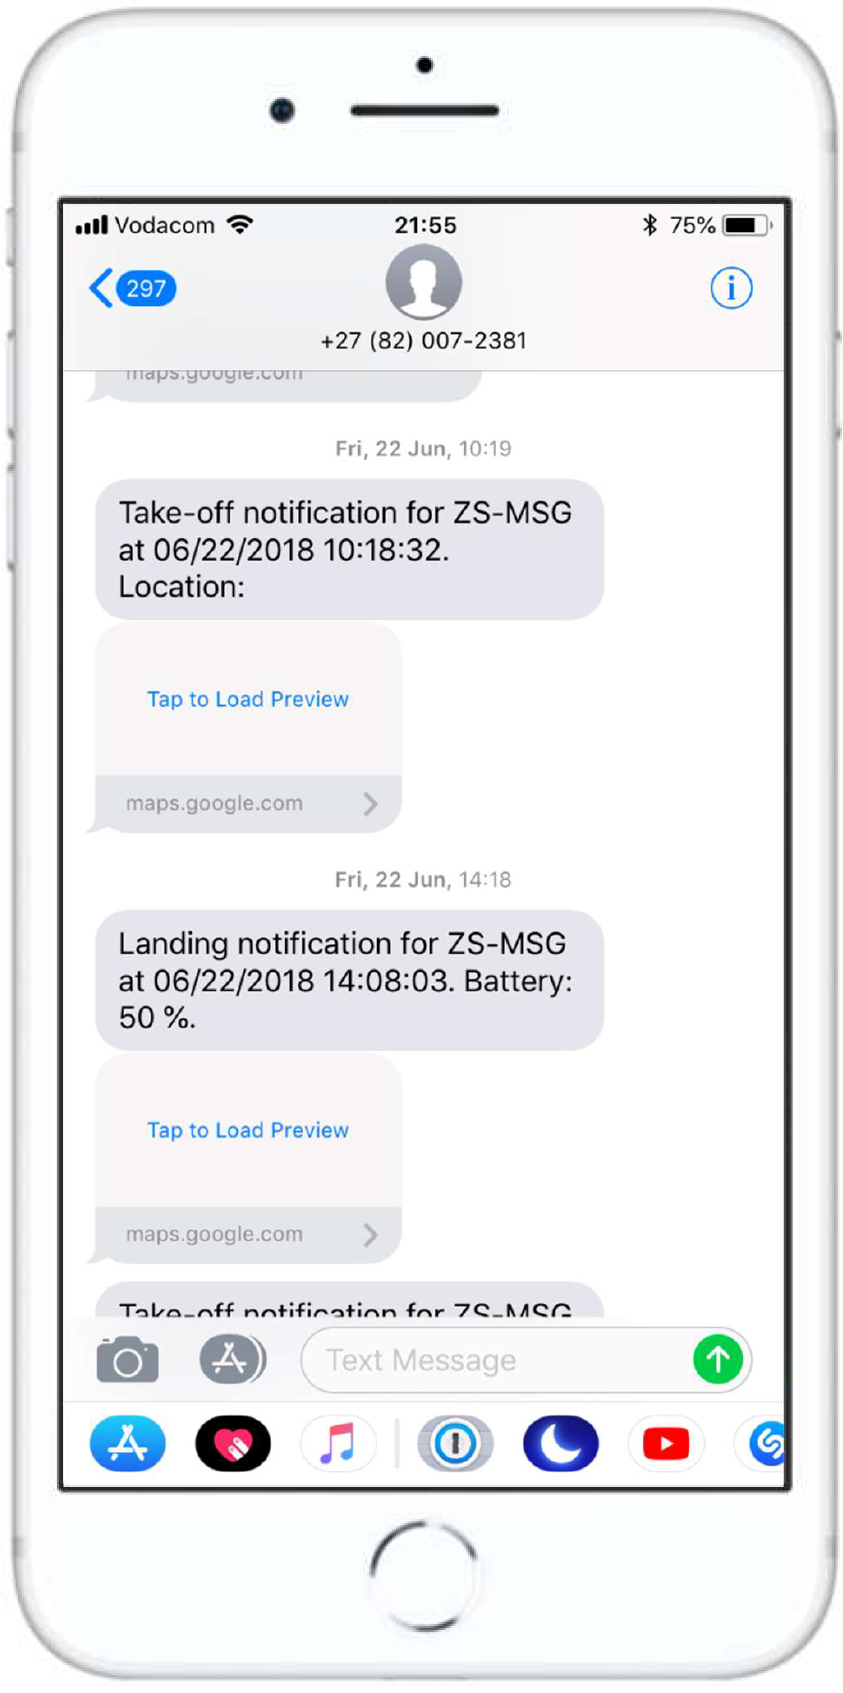 Beegle X-1 aircraft tracker SMS notifications